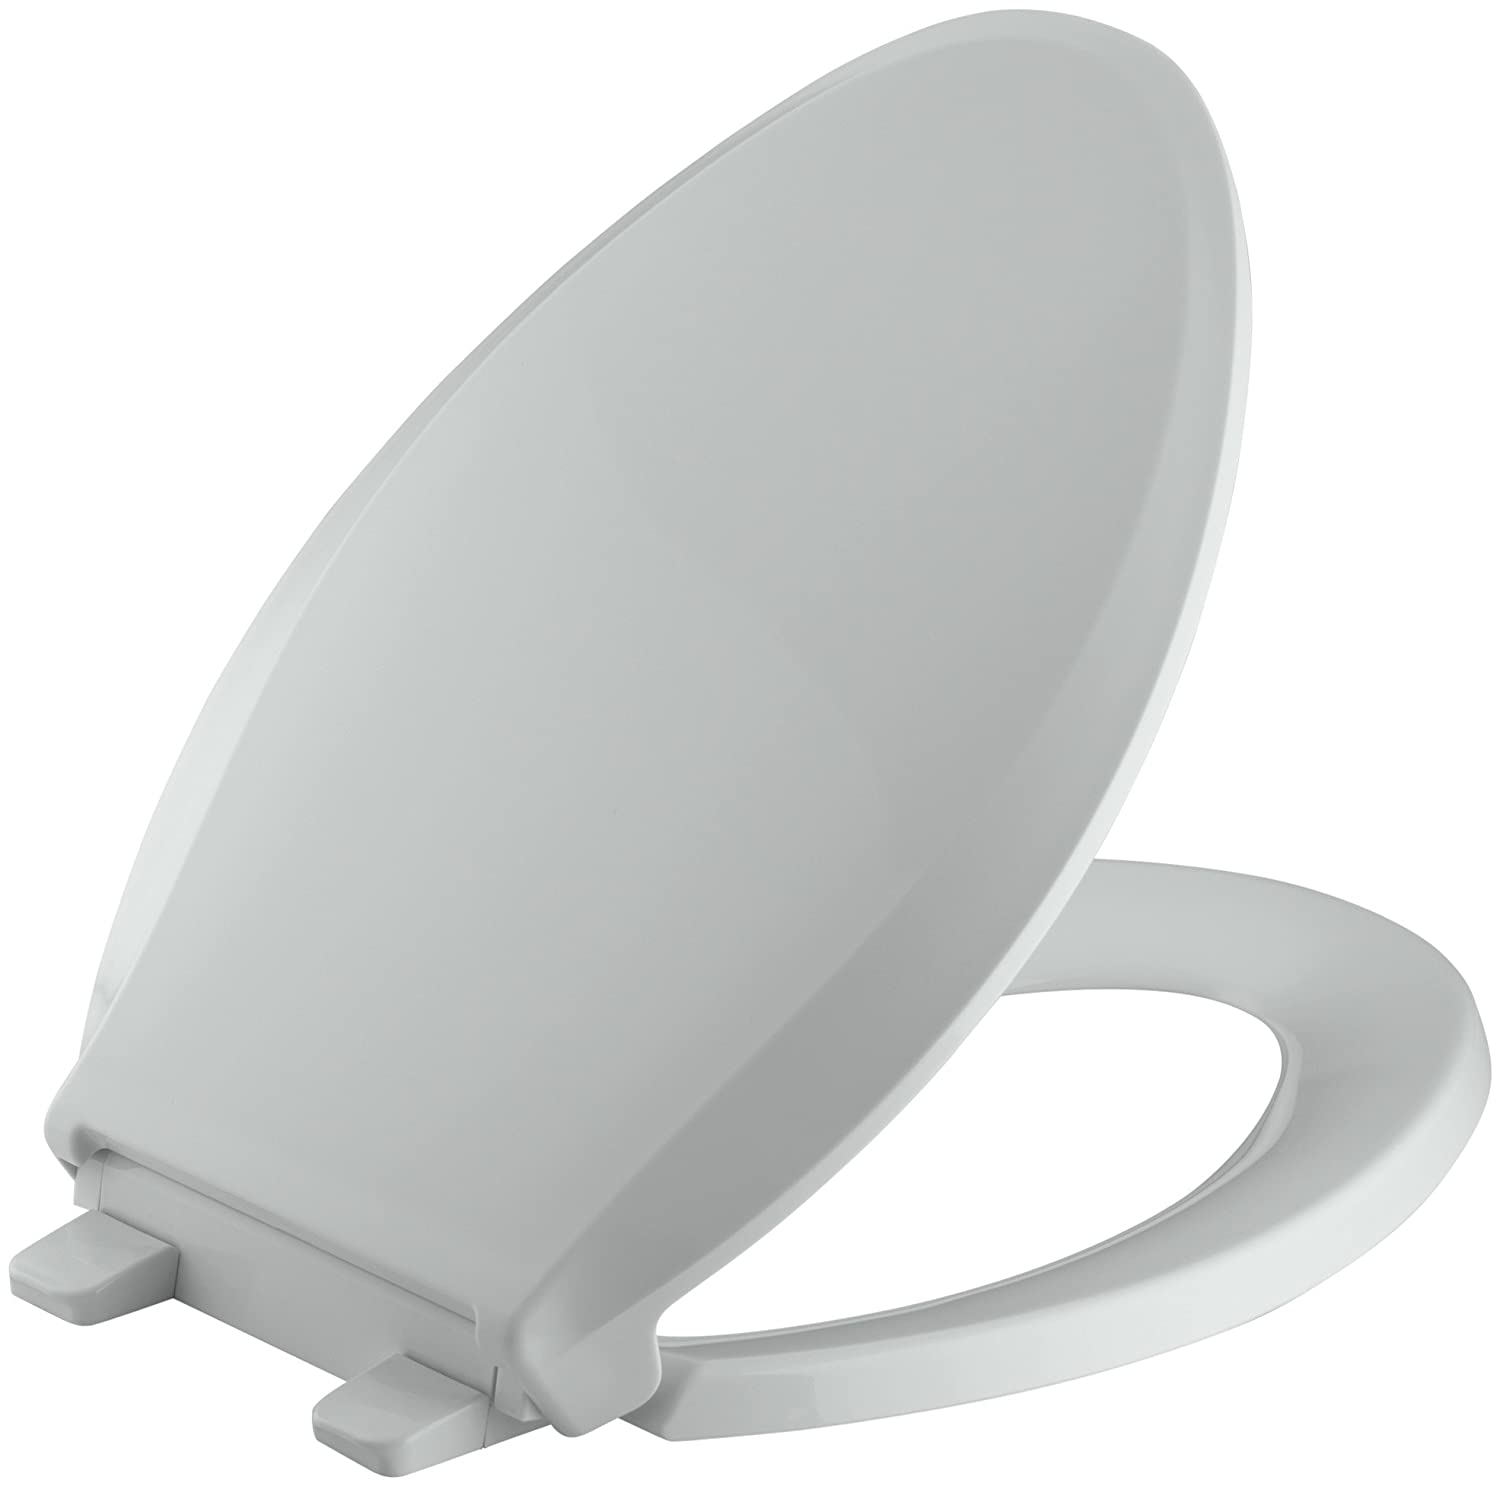 KOHLER K-4636-47 Cachet Quiet-Close with Grip-Tight Bumpers Elongated Toilet Seat, Almond